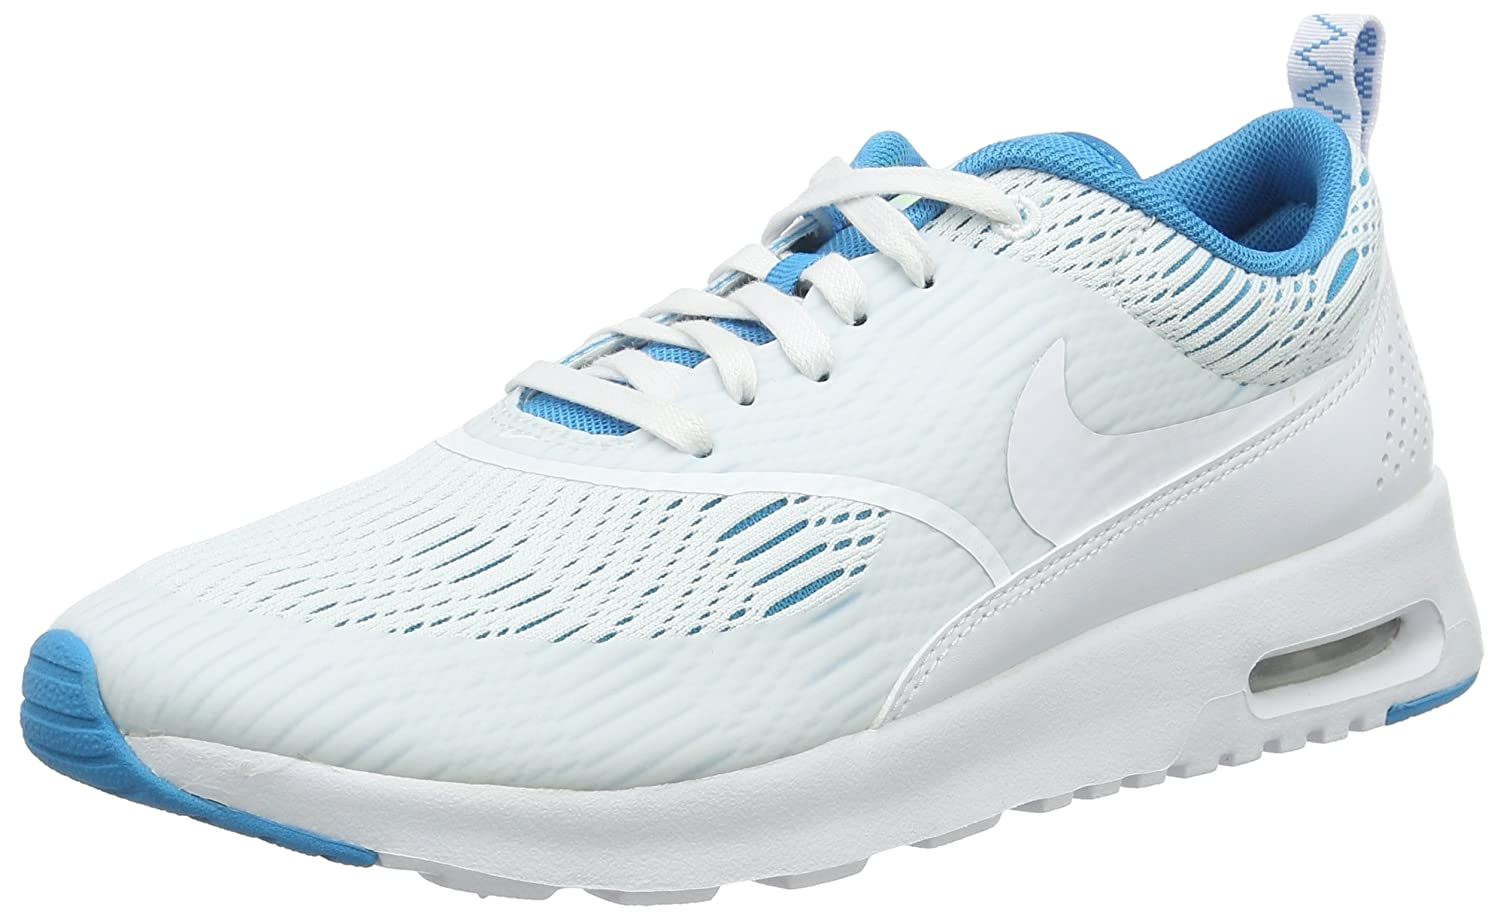 NIKE Women's Air Max Thea Low-Top Sneakers, Black B00890SY1A 11 B(M) US|White/Blue Lagoon/Ghost Green